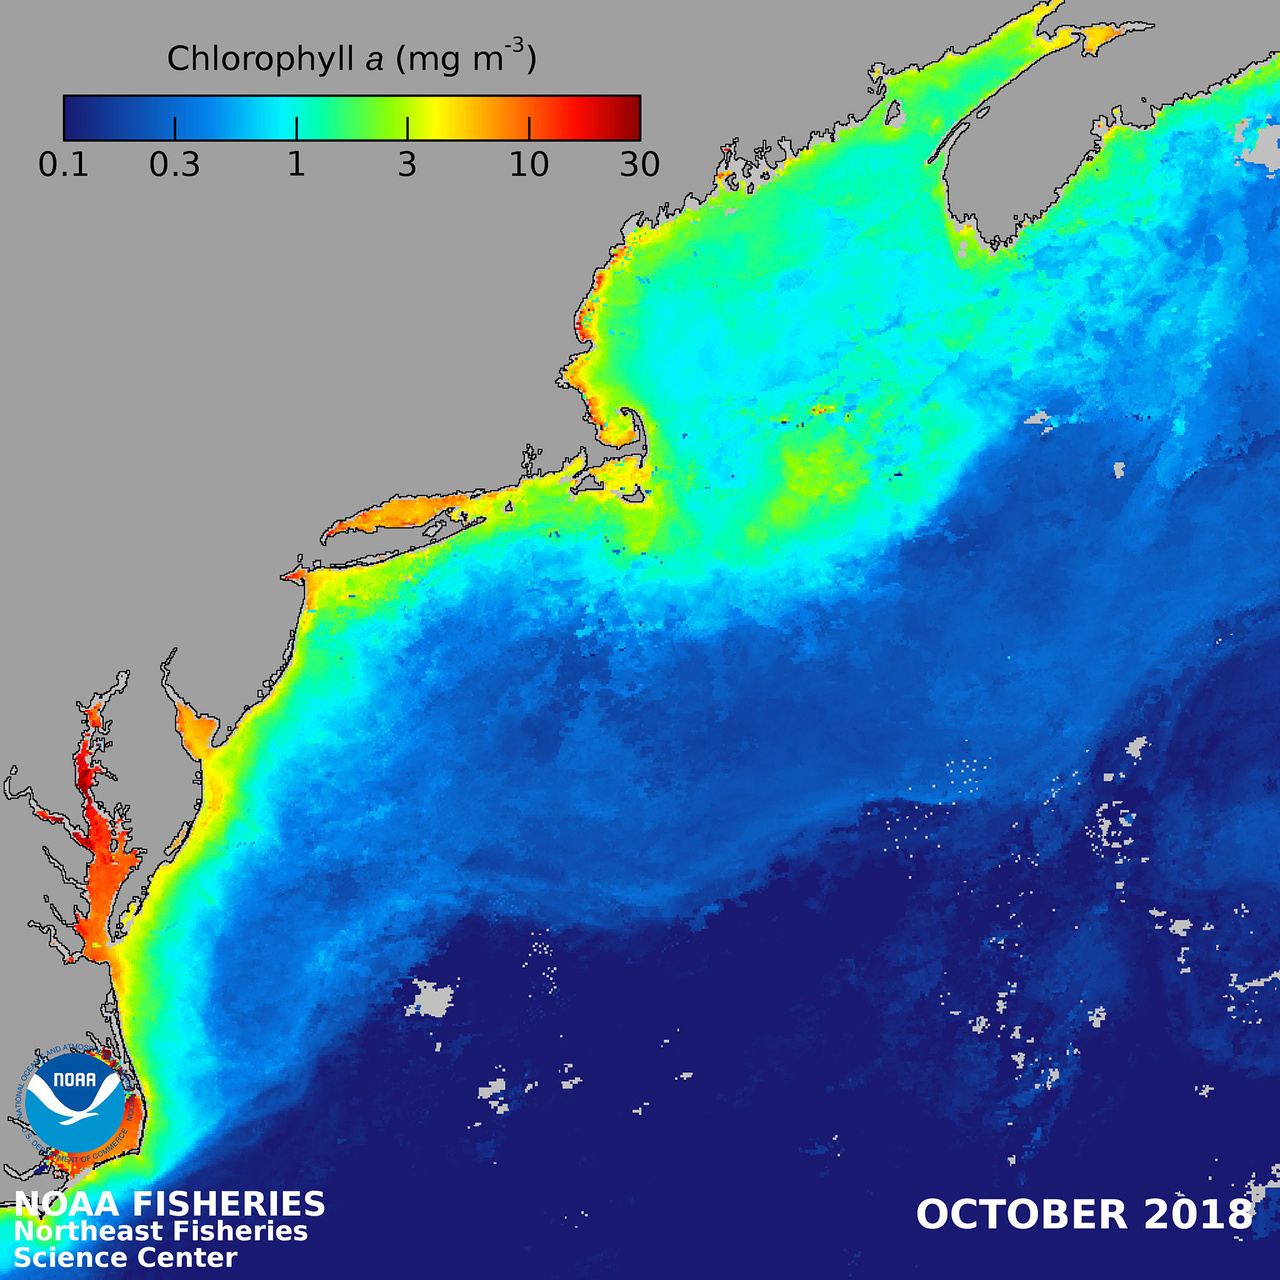 Map from Nova Scotia to Delaware showing chlorophyll a concentrations.  0.1 dark blue to 30 dark red.  Highest concentrations closets to shore.